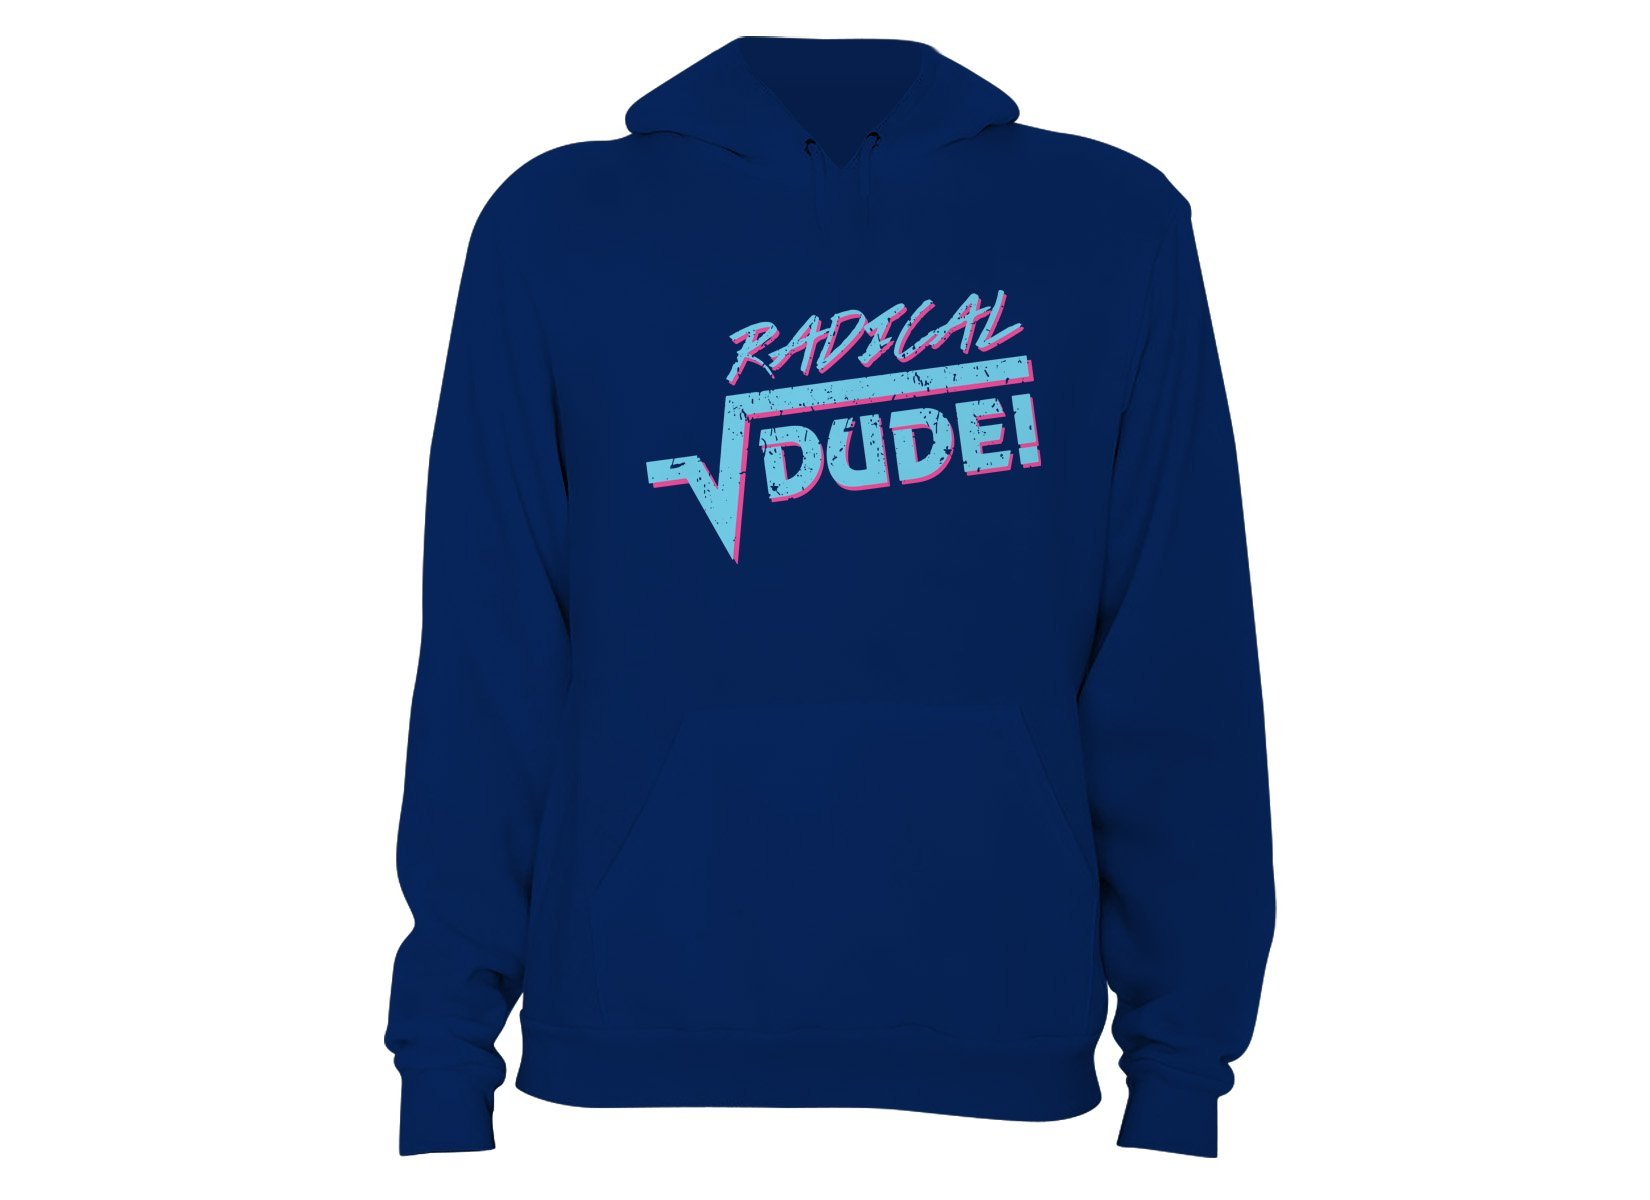 Radical Dude! on Hoodie